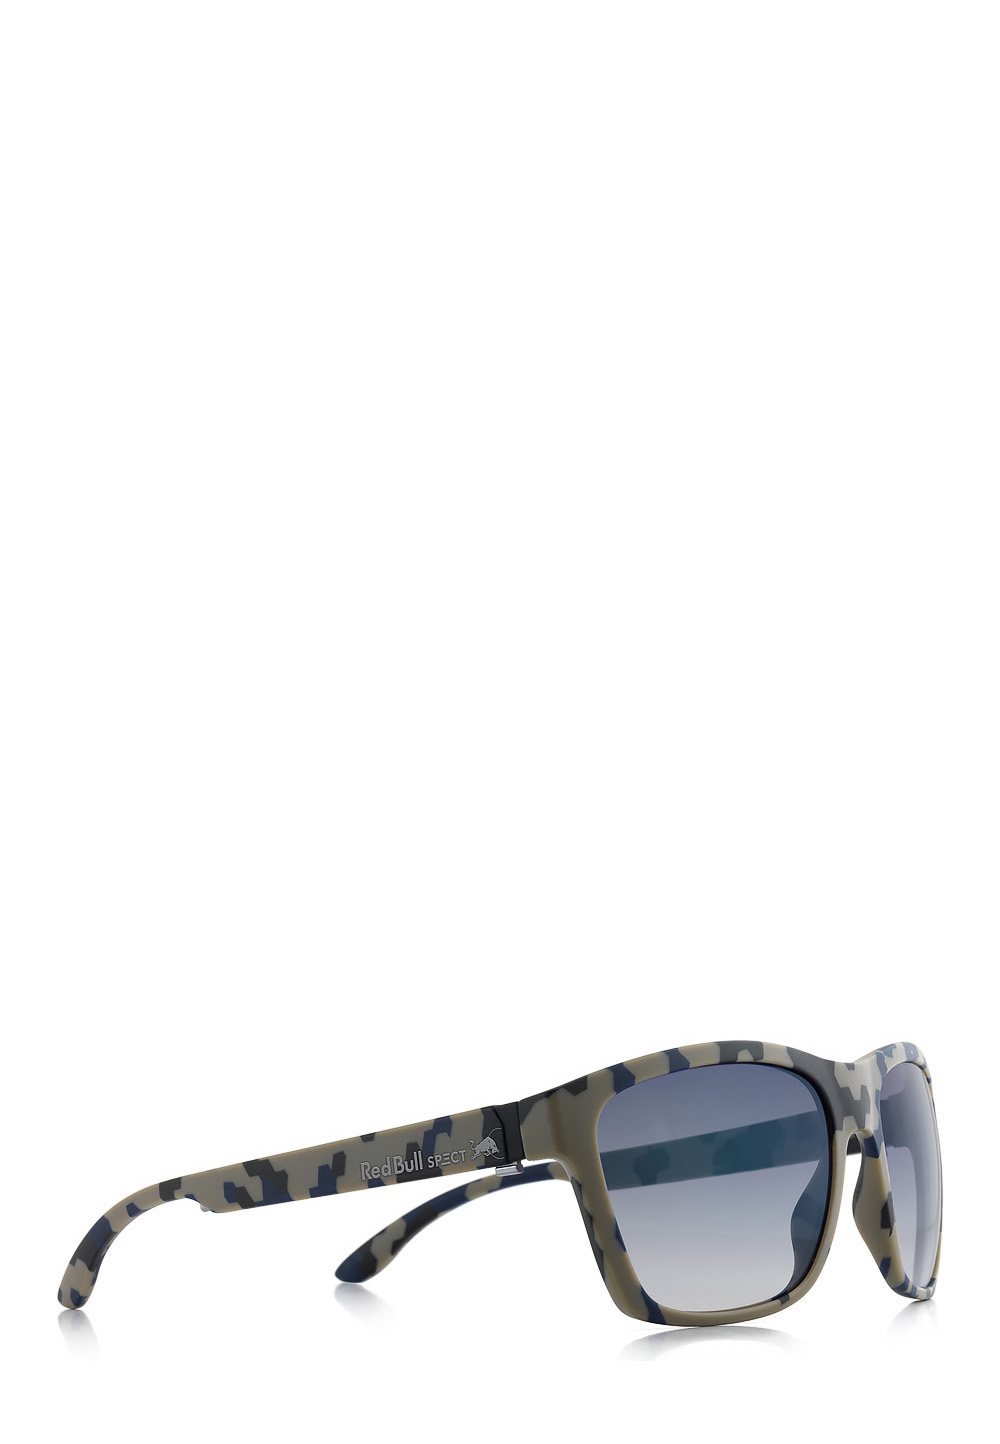 RED Bull Spect Sonnenbrille, polarized, 400, camouflage bunt